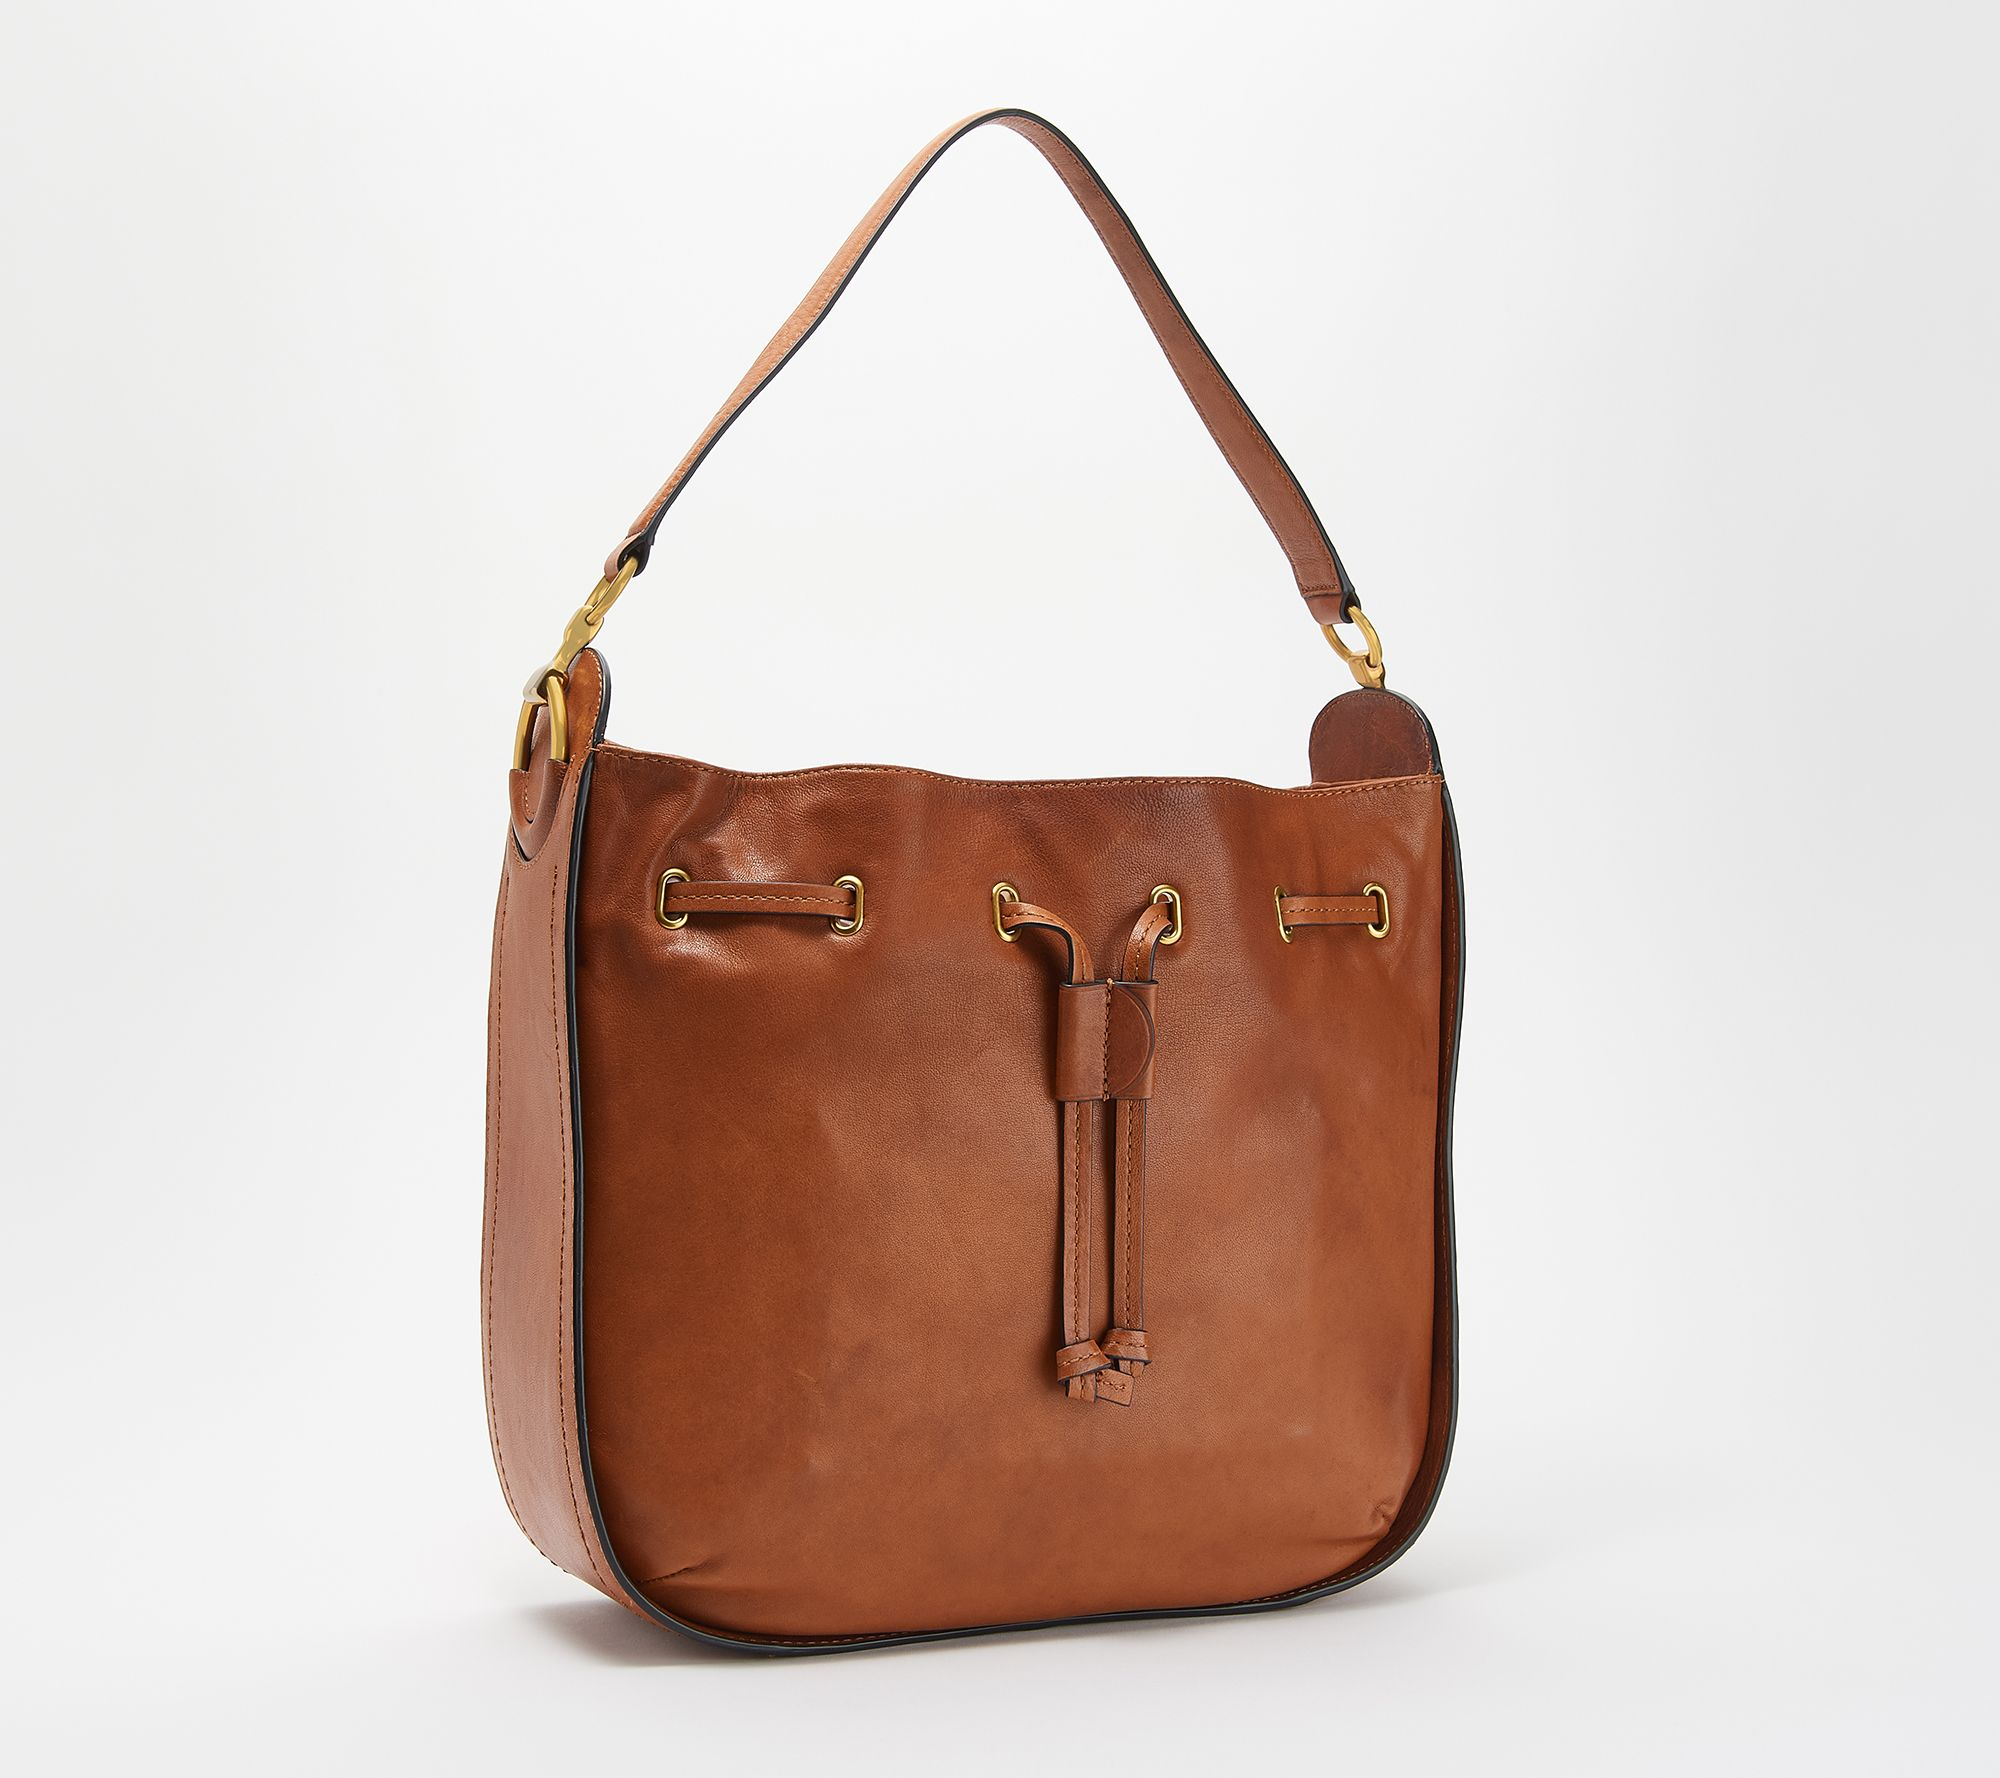 989b018f12a5 Frye Leather Ilana Hobo Handbag — QVC.com